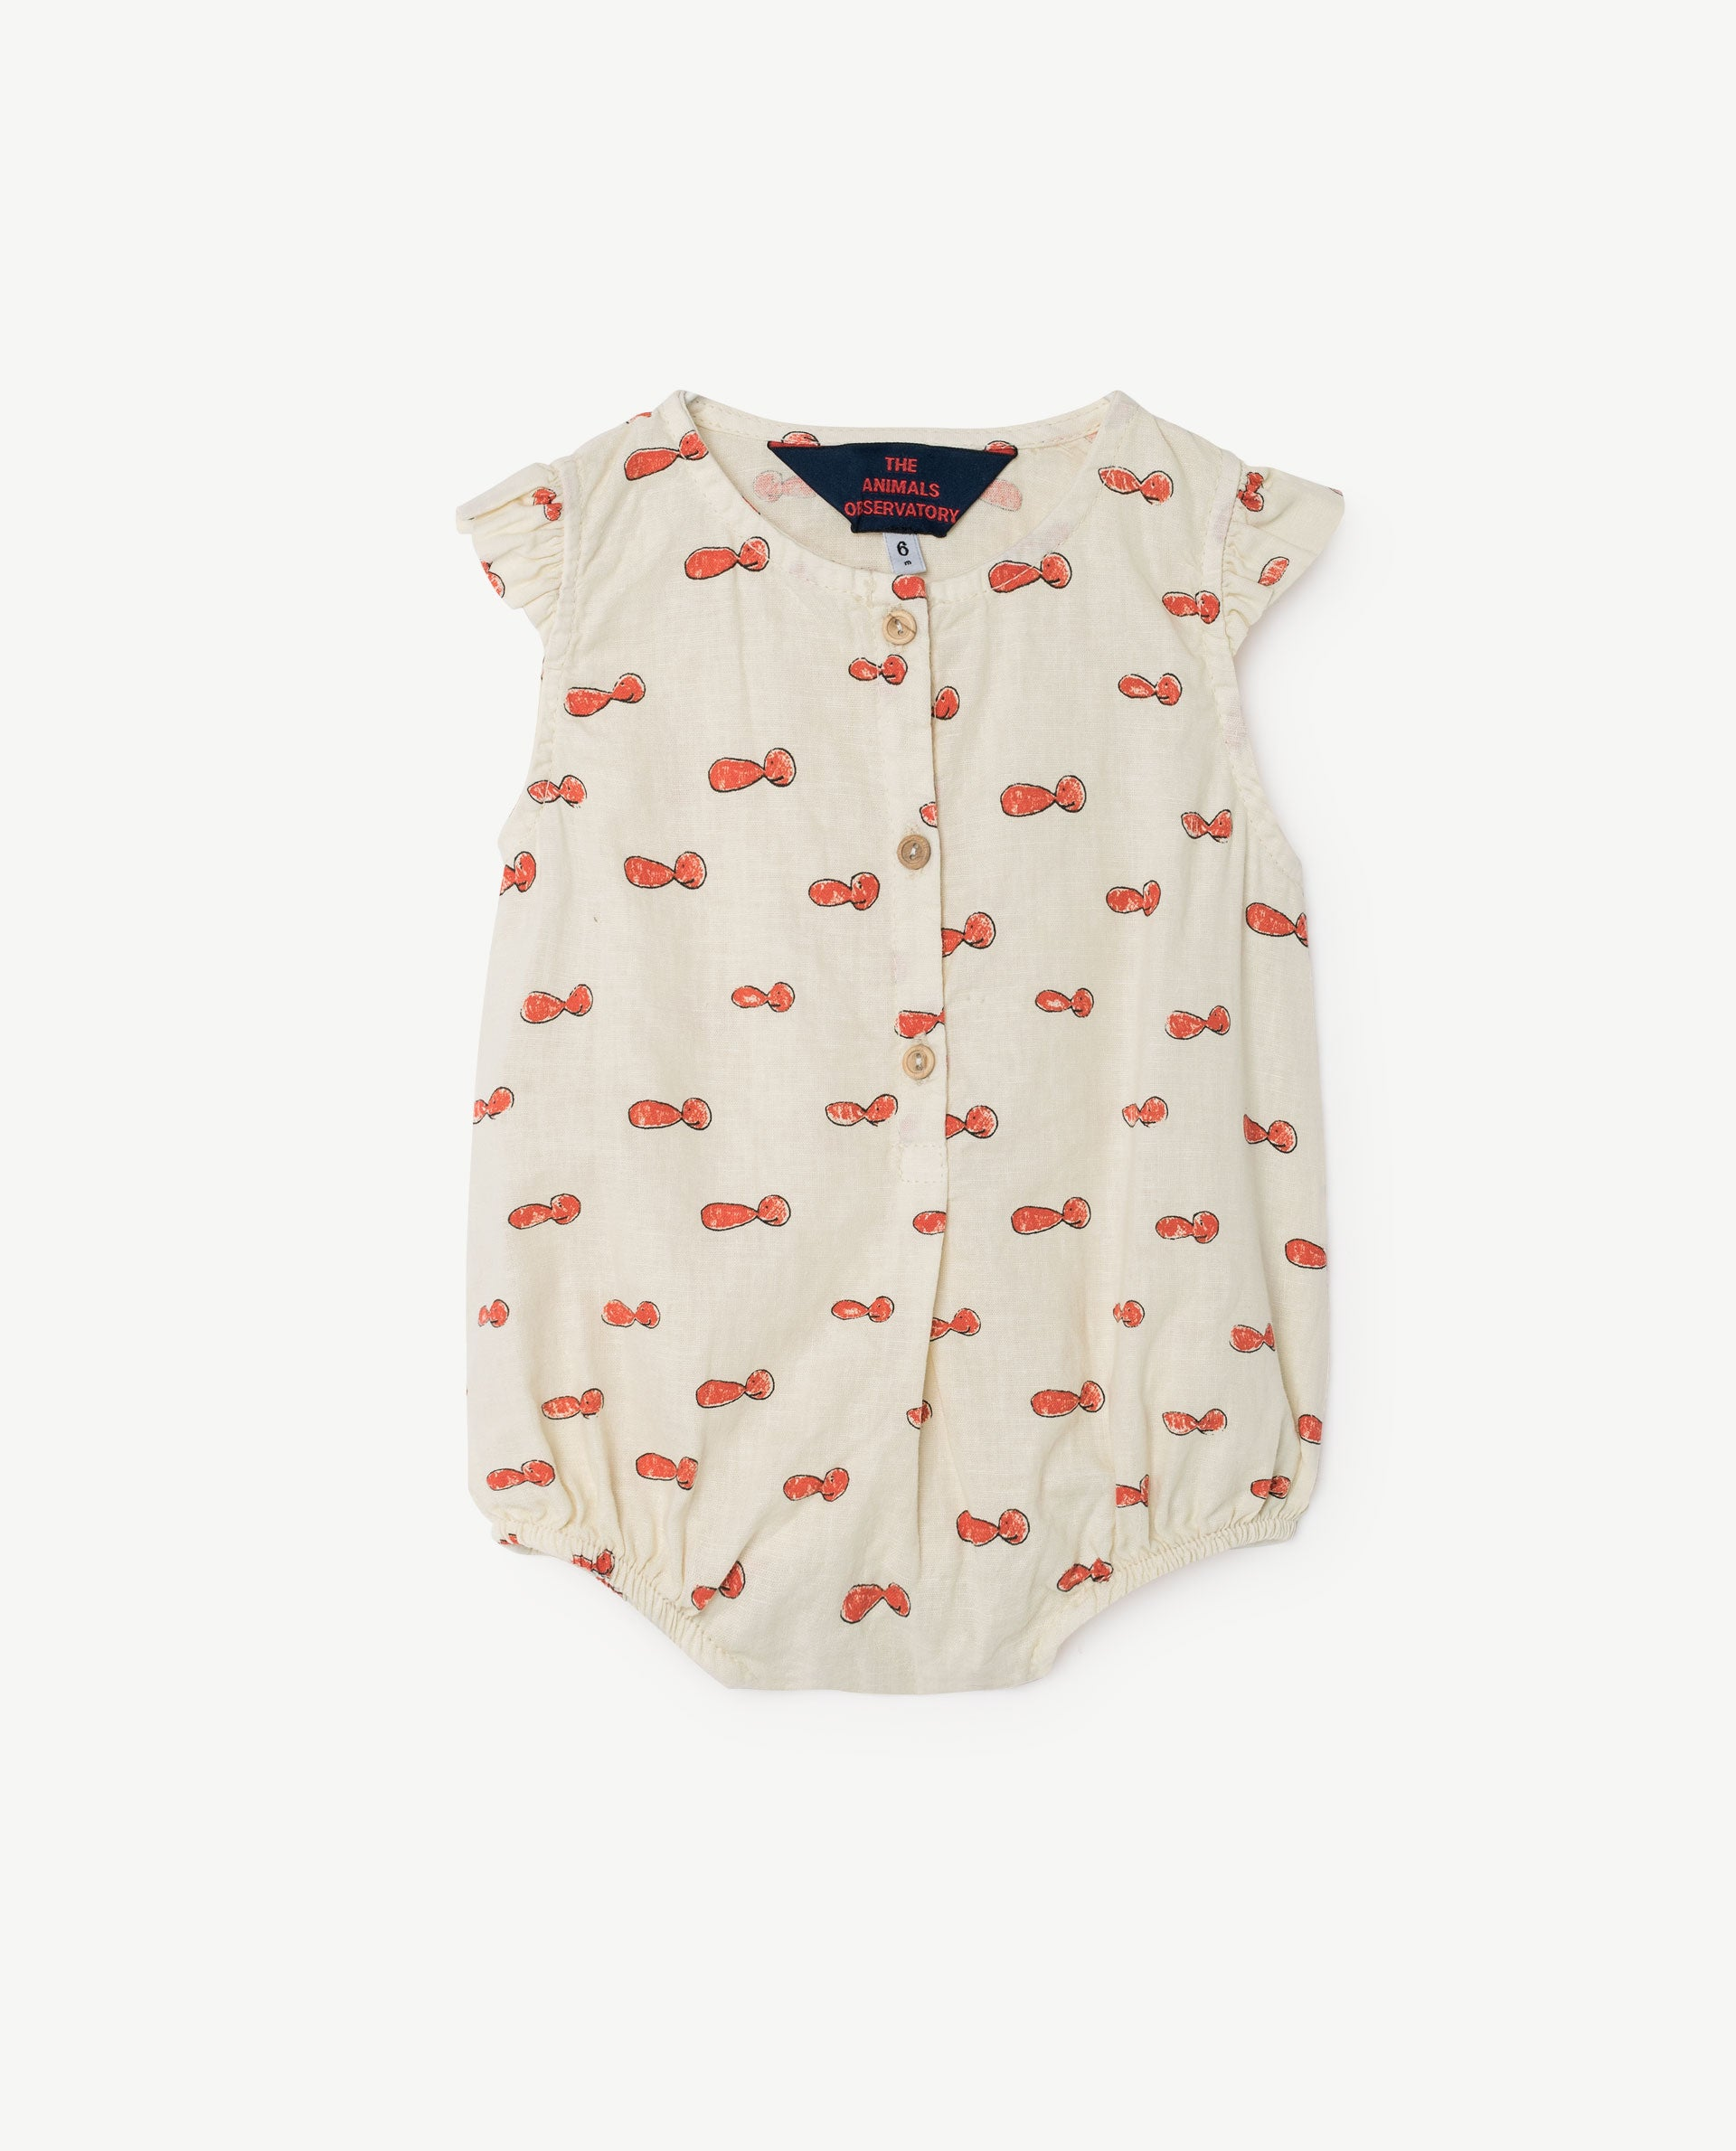 The Animals Observatory Butterfly Baby Romper in Noseman | BIEN BIEN